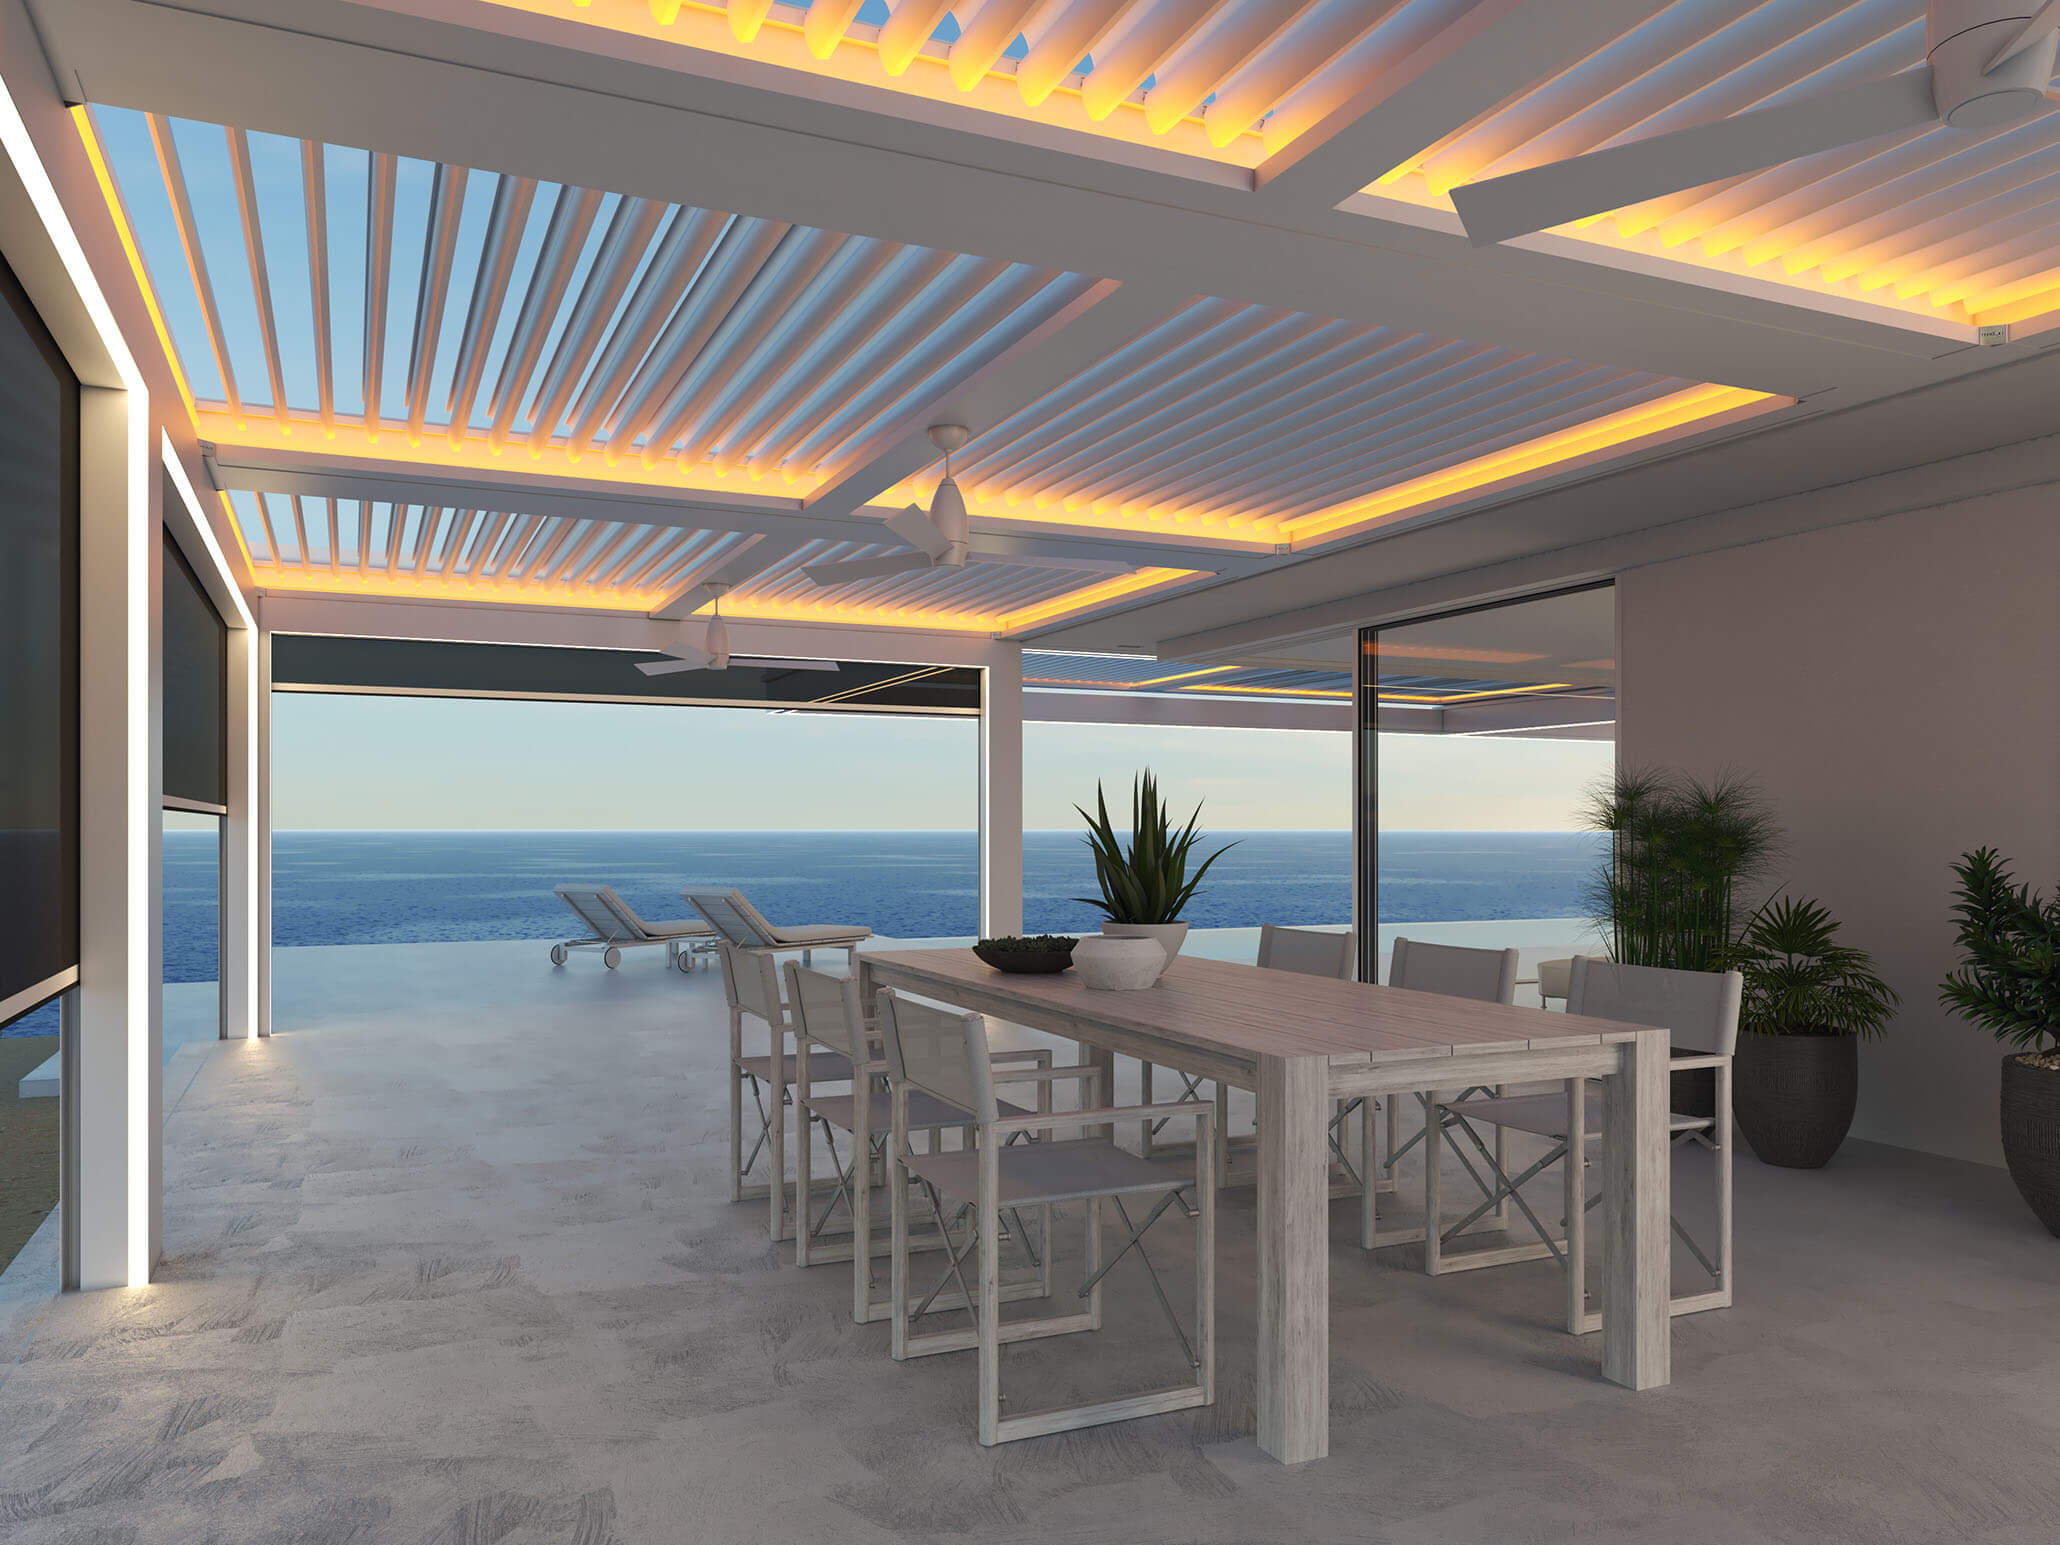 Enhanced white pergola over white patio furniture with golden light glowing around edges of pivotable louvers with screens partially down on left and view to ocean straight ahead